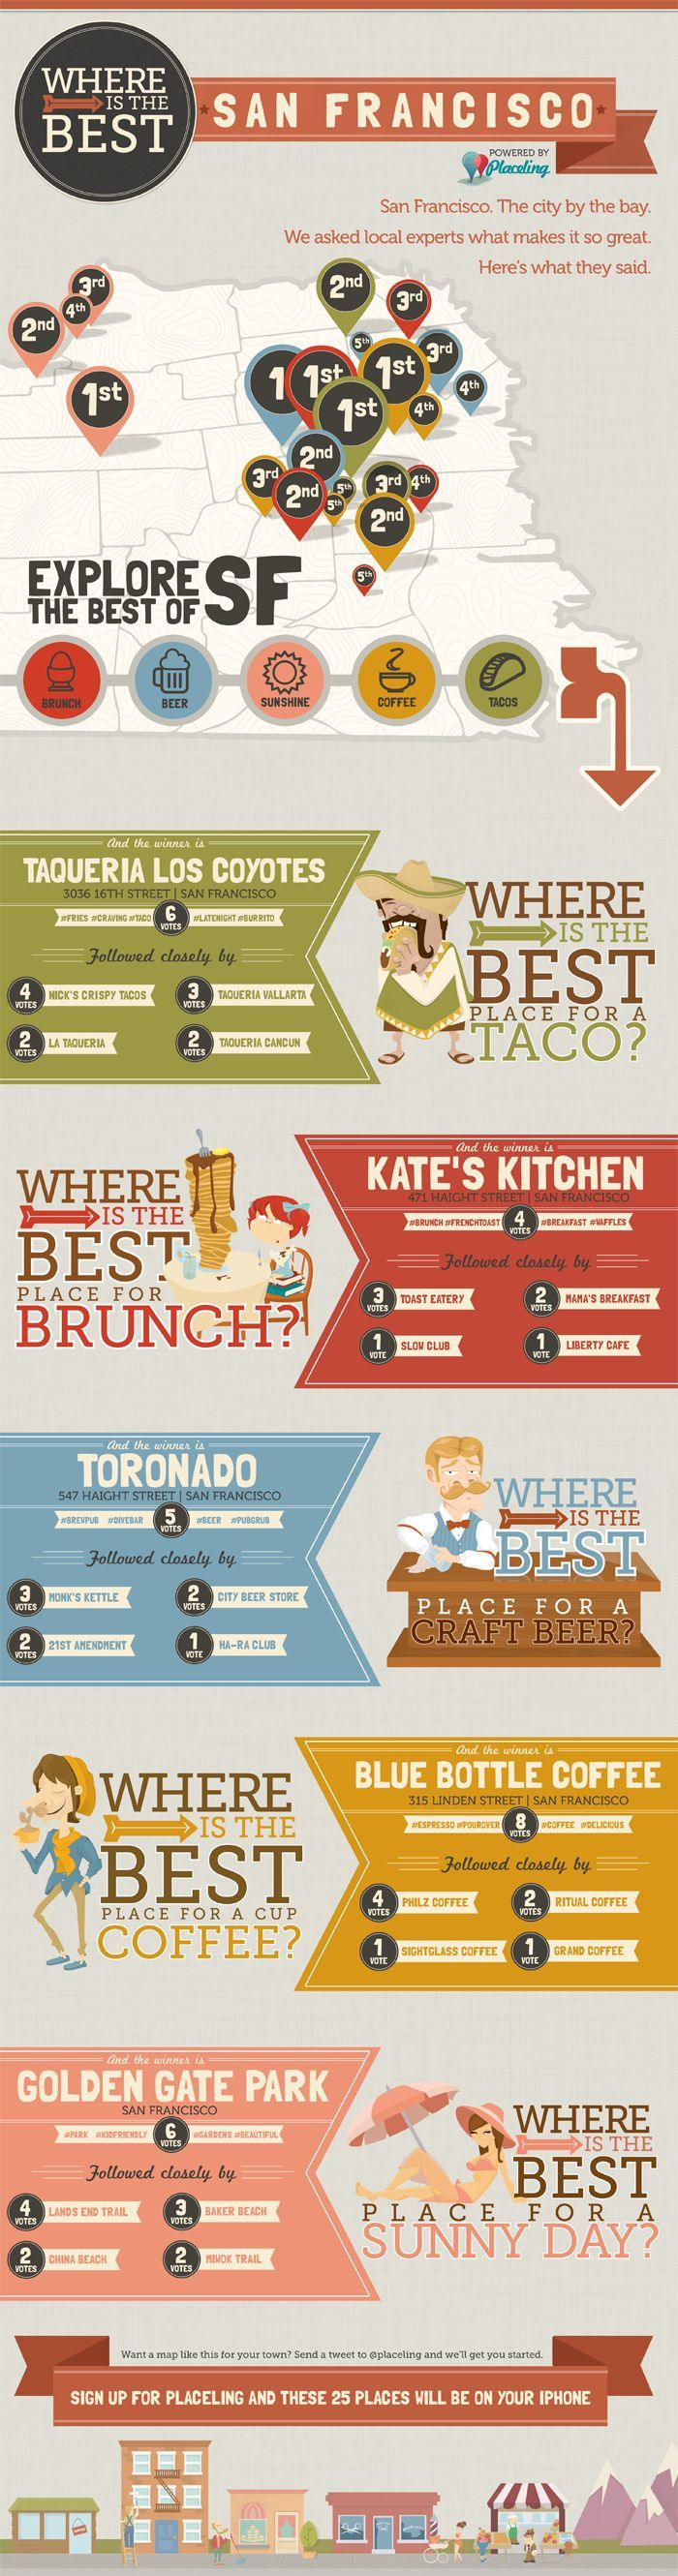 A crowdsourced infographic of the best places in San Francisco.